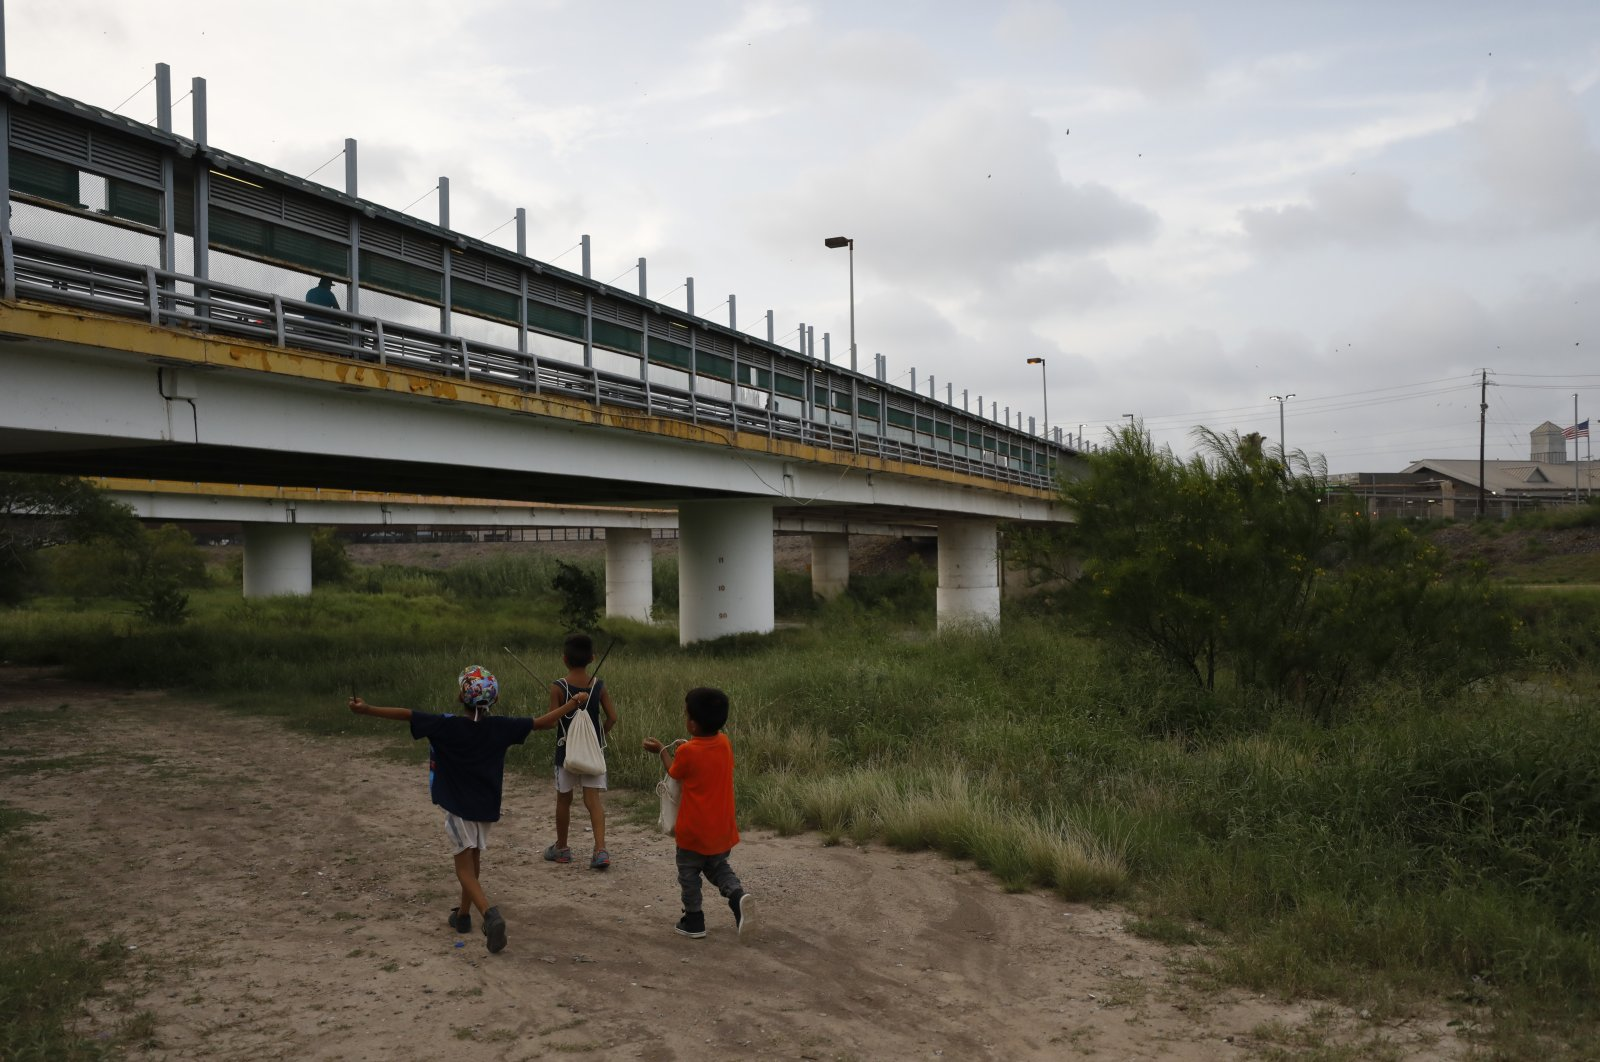 In this June 26, 2019 file photo, migrant children walk with their families along the Rio Grande, as pedestrian commuters use the Puerta Mexico bridge to enter Brownsville, Texas, seen from Matamoros, Tamaulipas state, Mexico. (AP Photo)